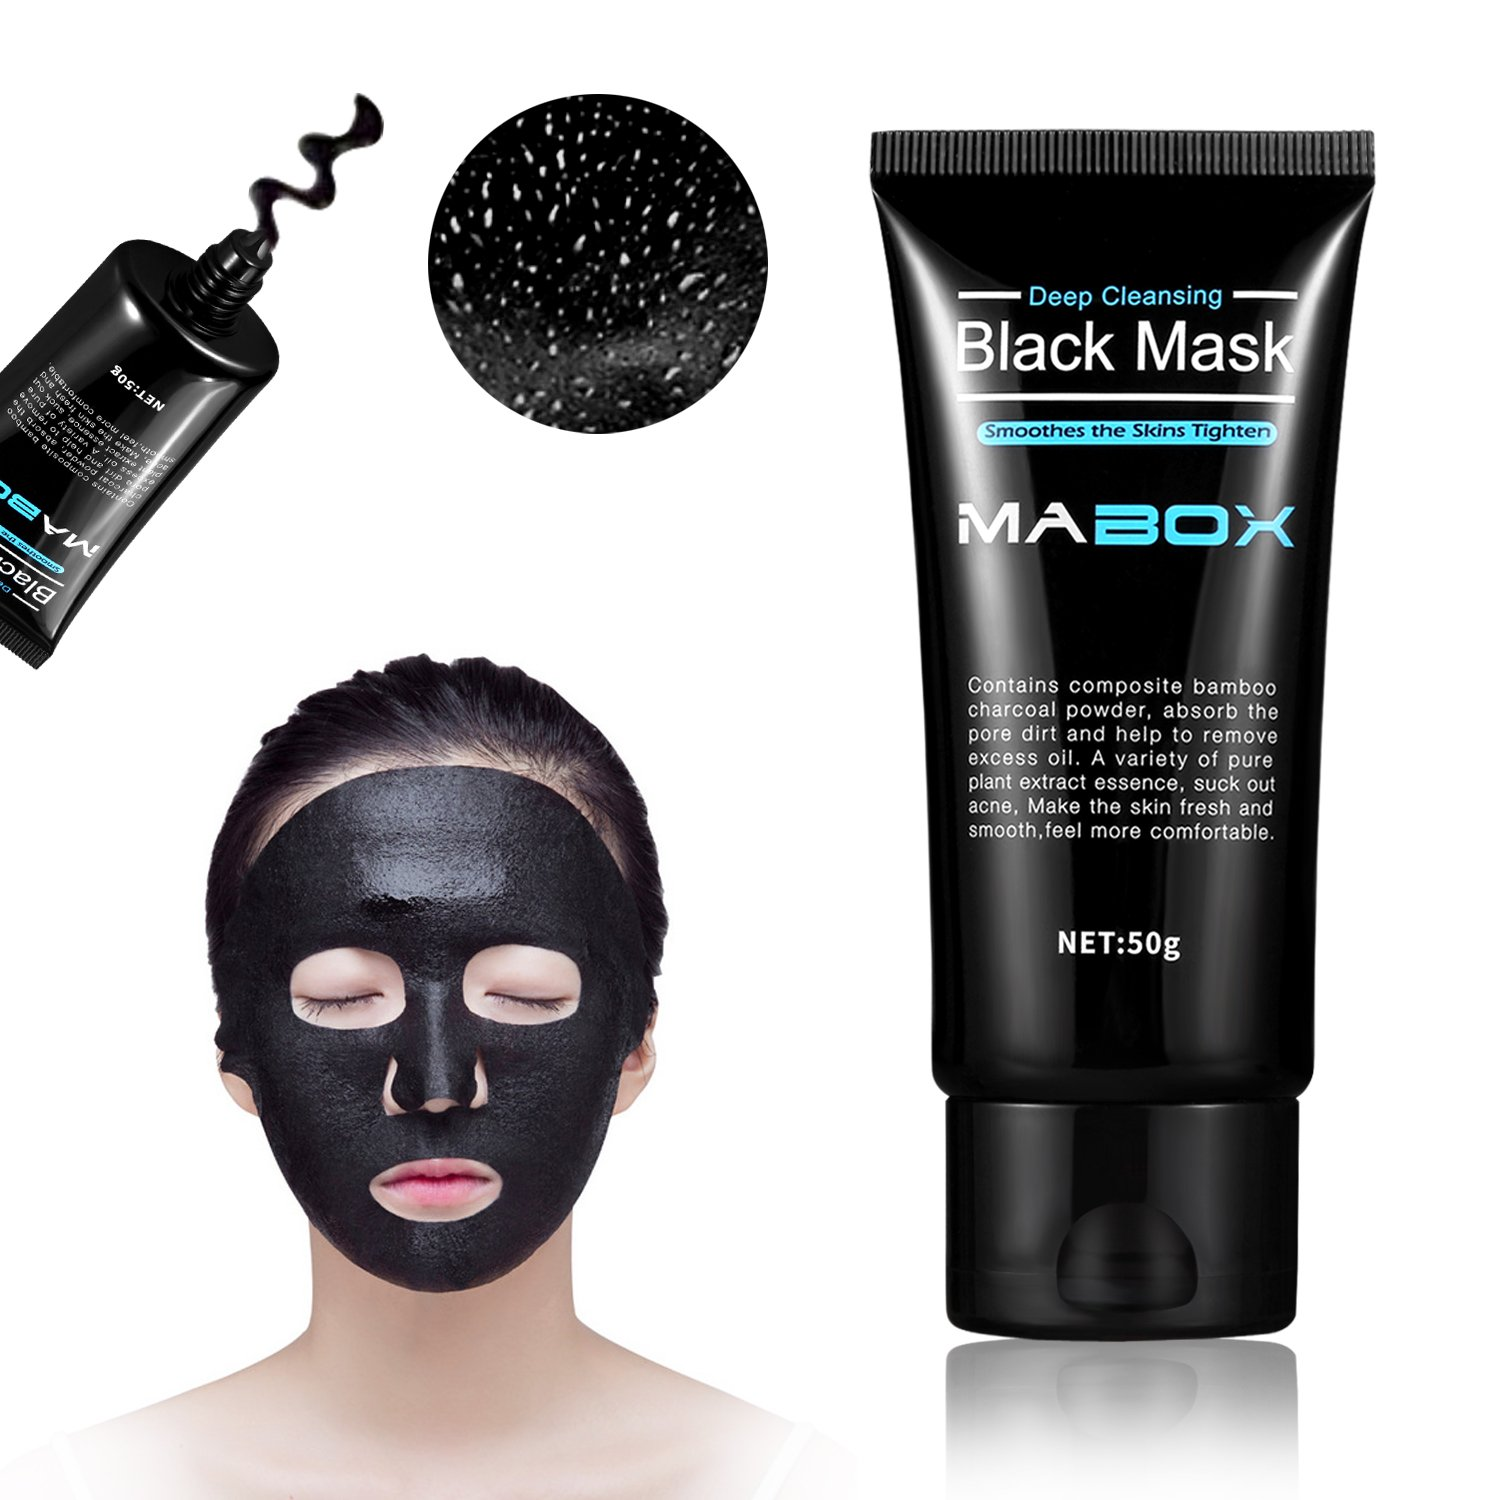 Buy Deep Cleansing Blackhead Remover Now!